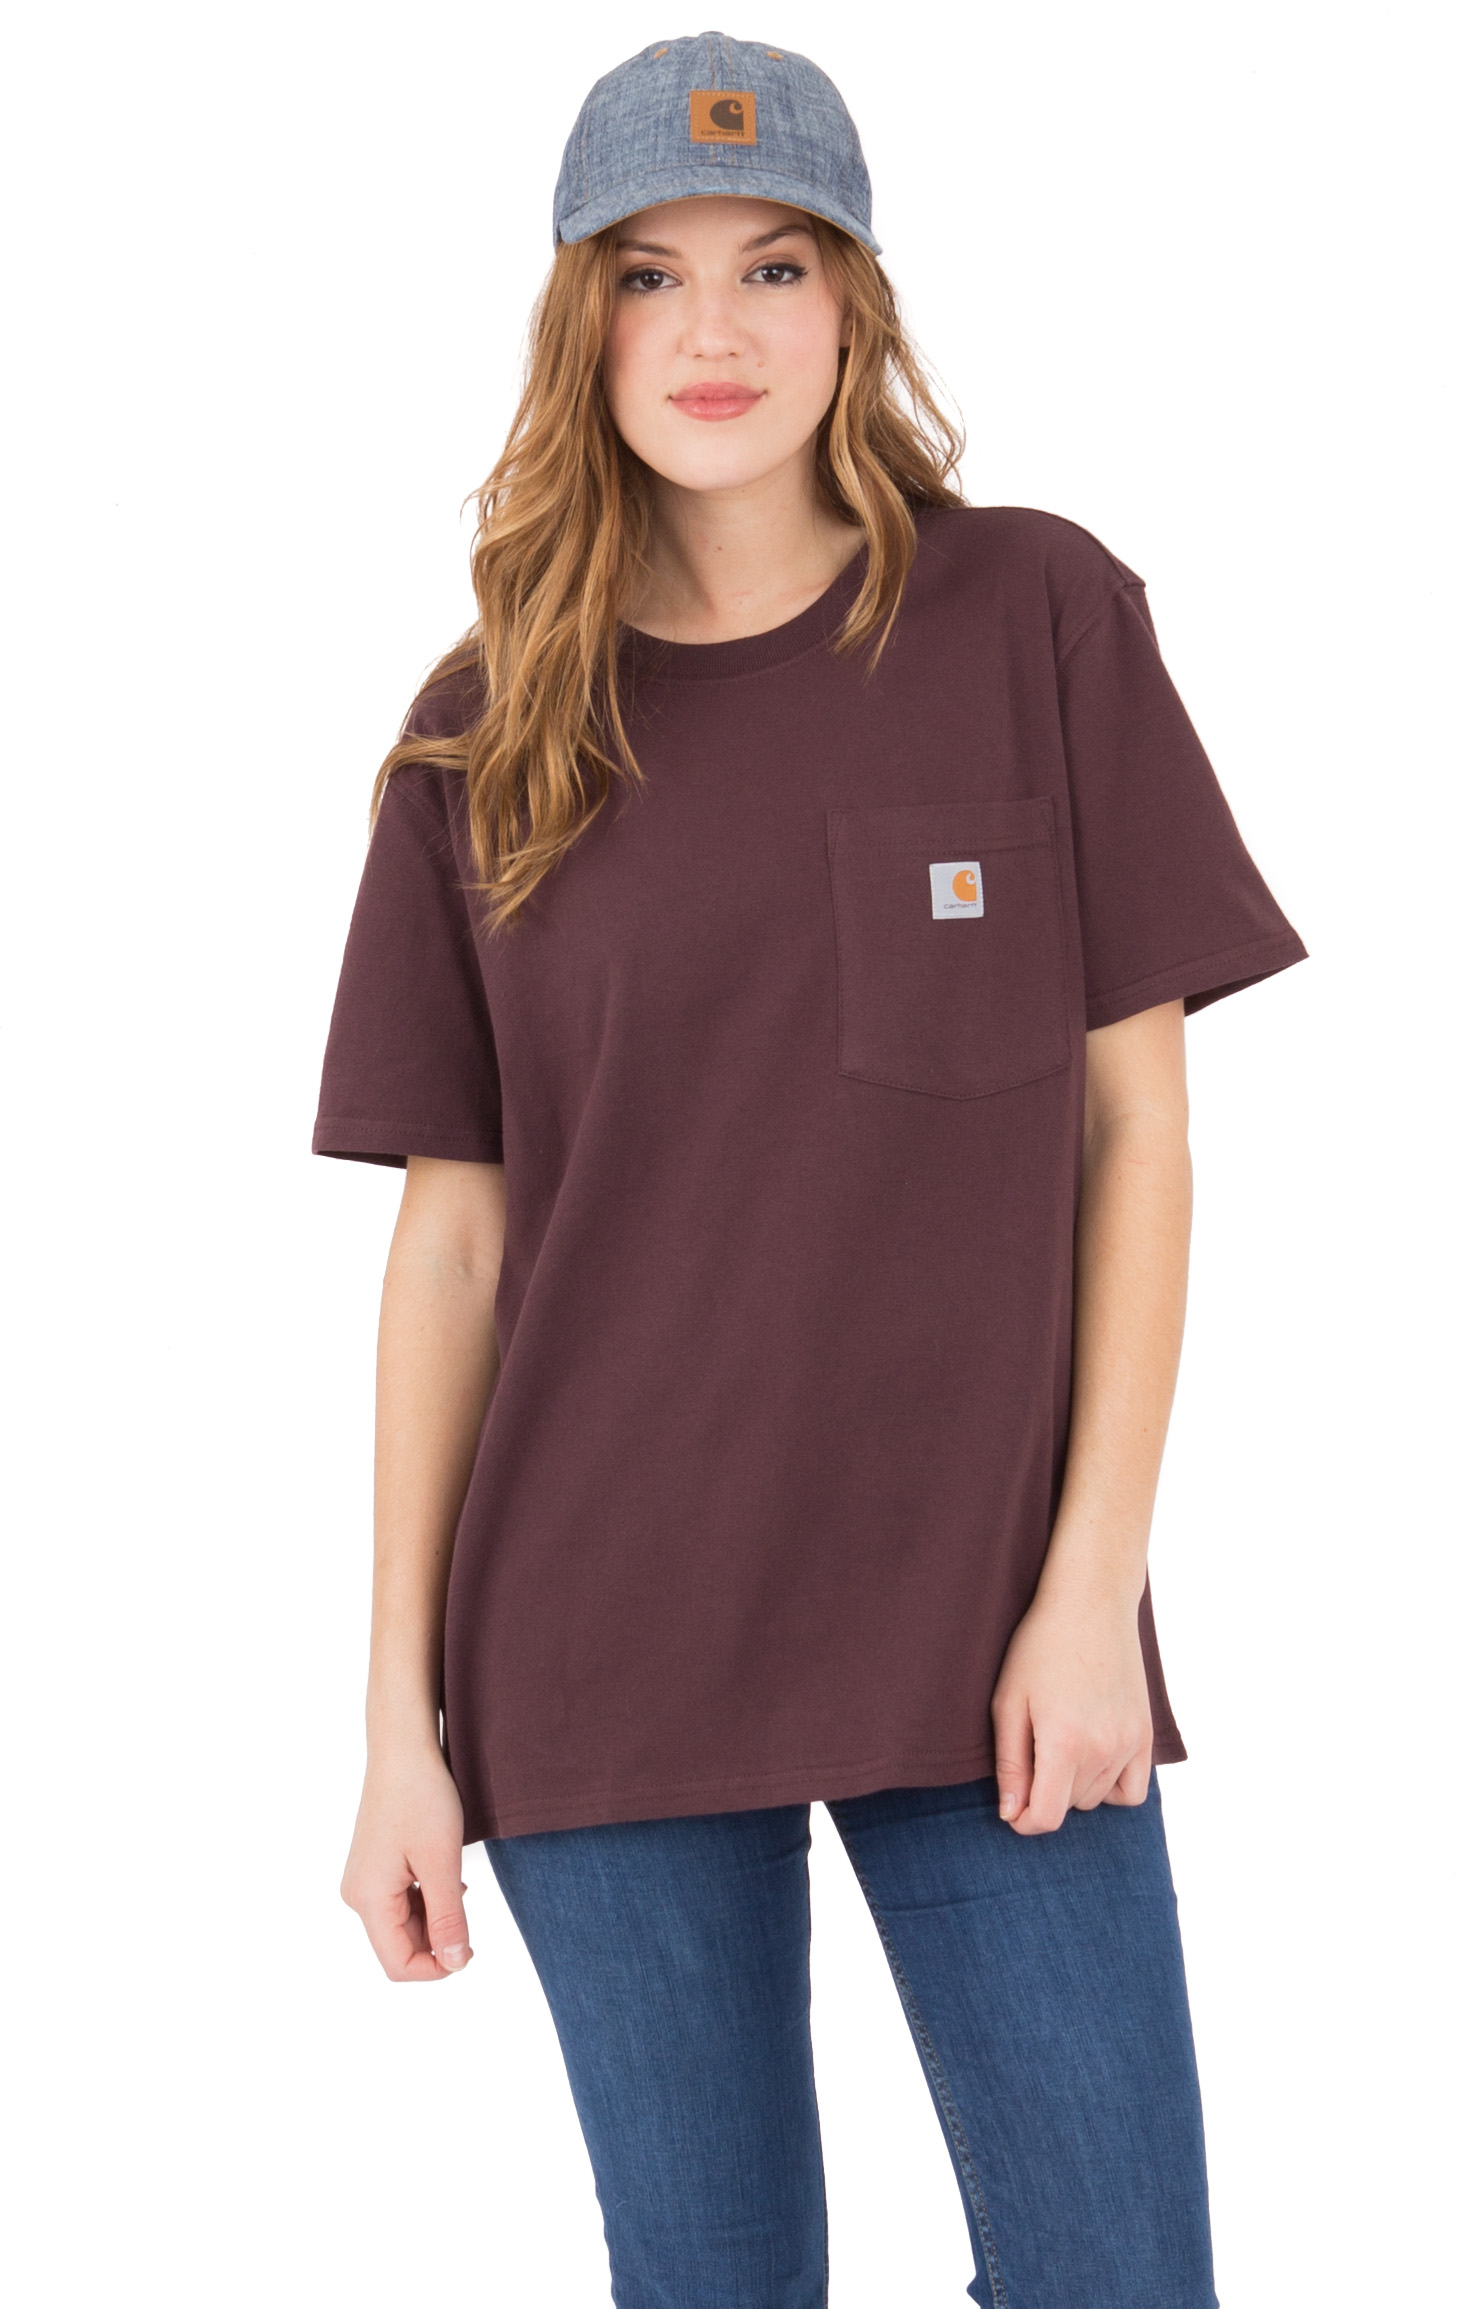 Carhartt Womens, (103067) WK87 Workwear Pocket T-Shirt - Deep Wine